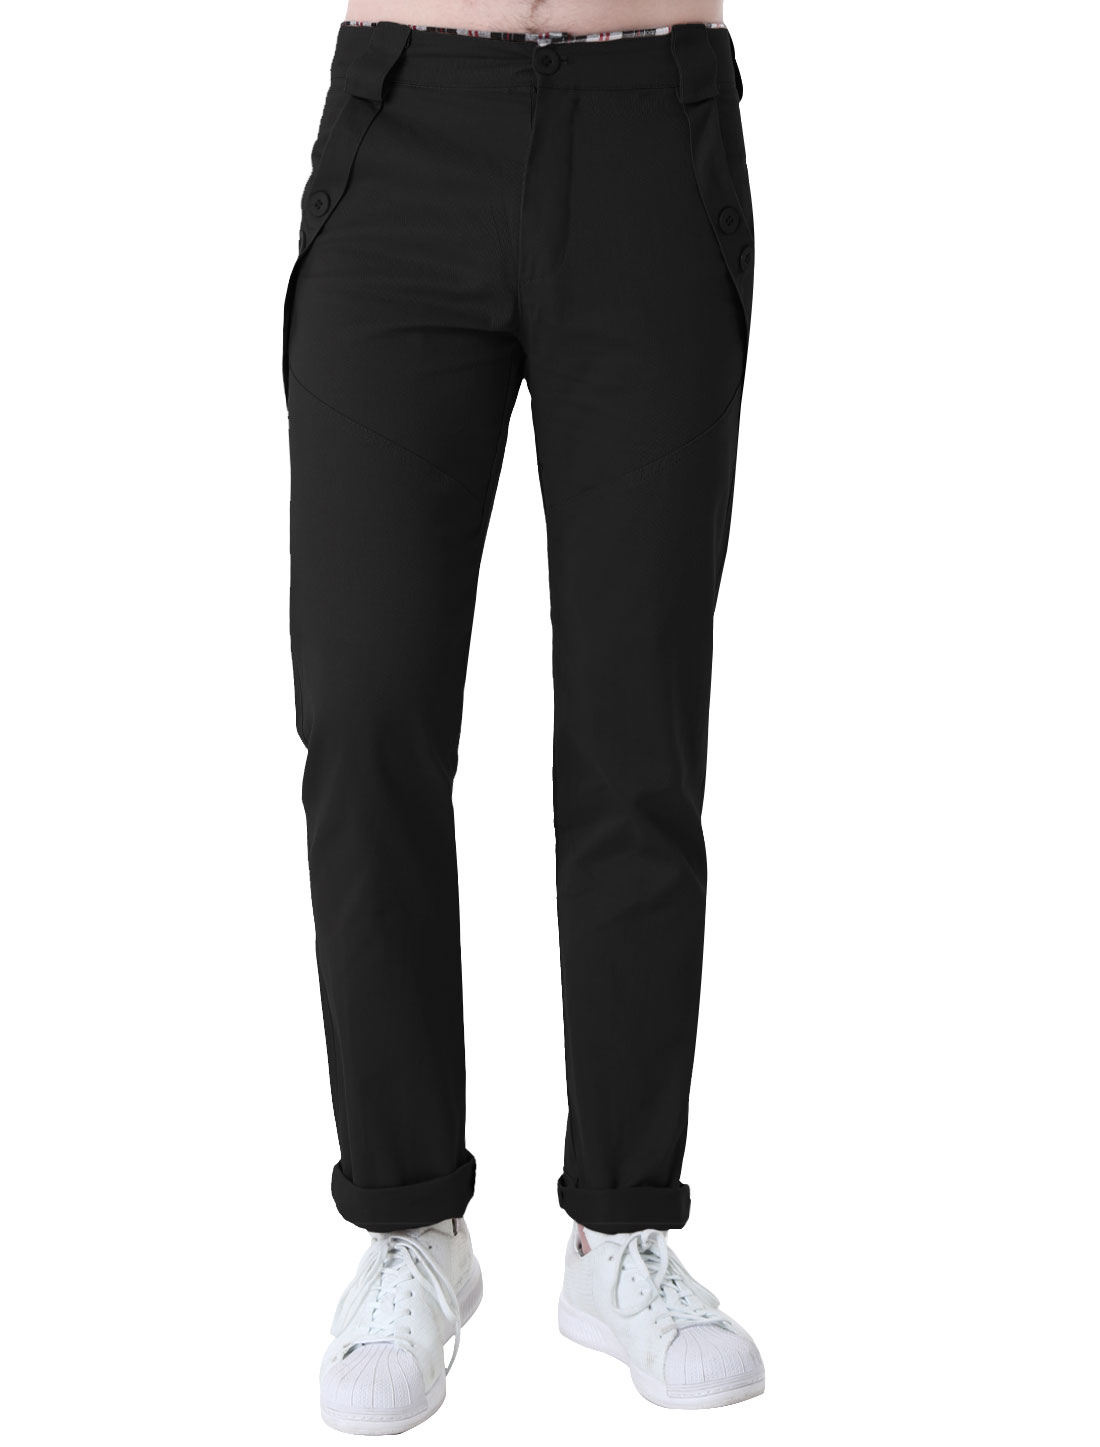 Mens Black Stylish Decorative Hip Pockets Straight Trousers W36